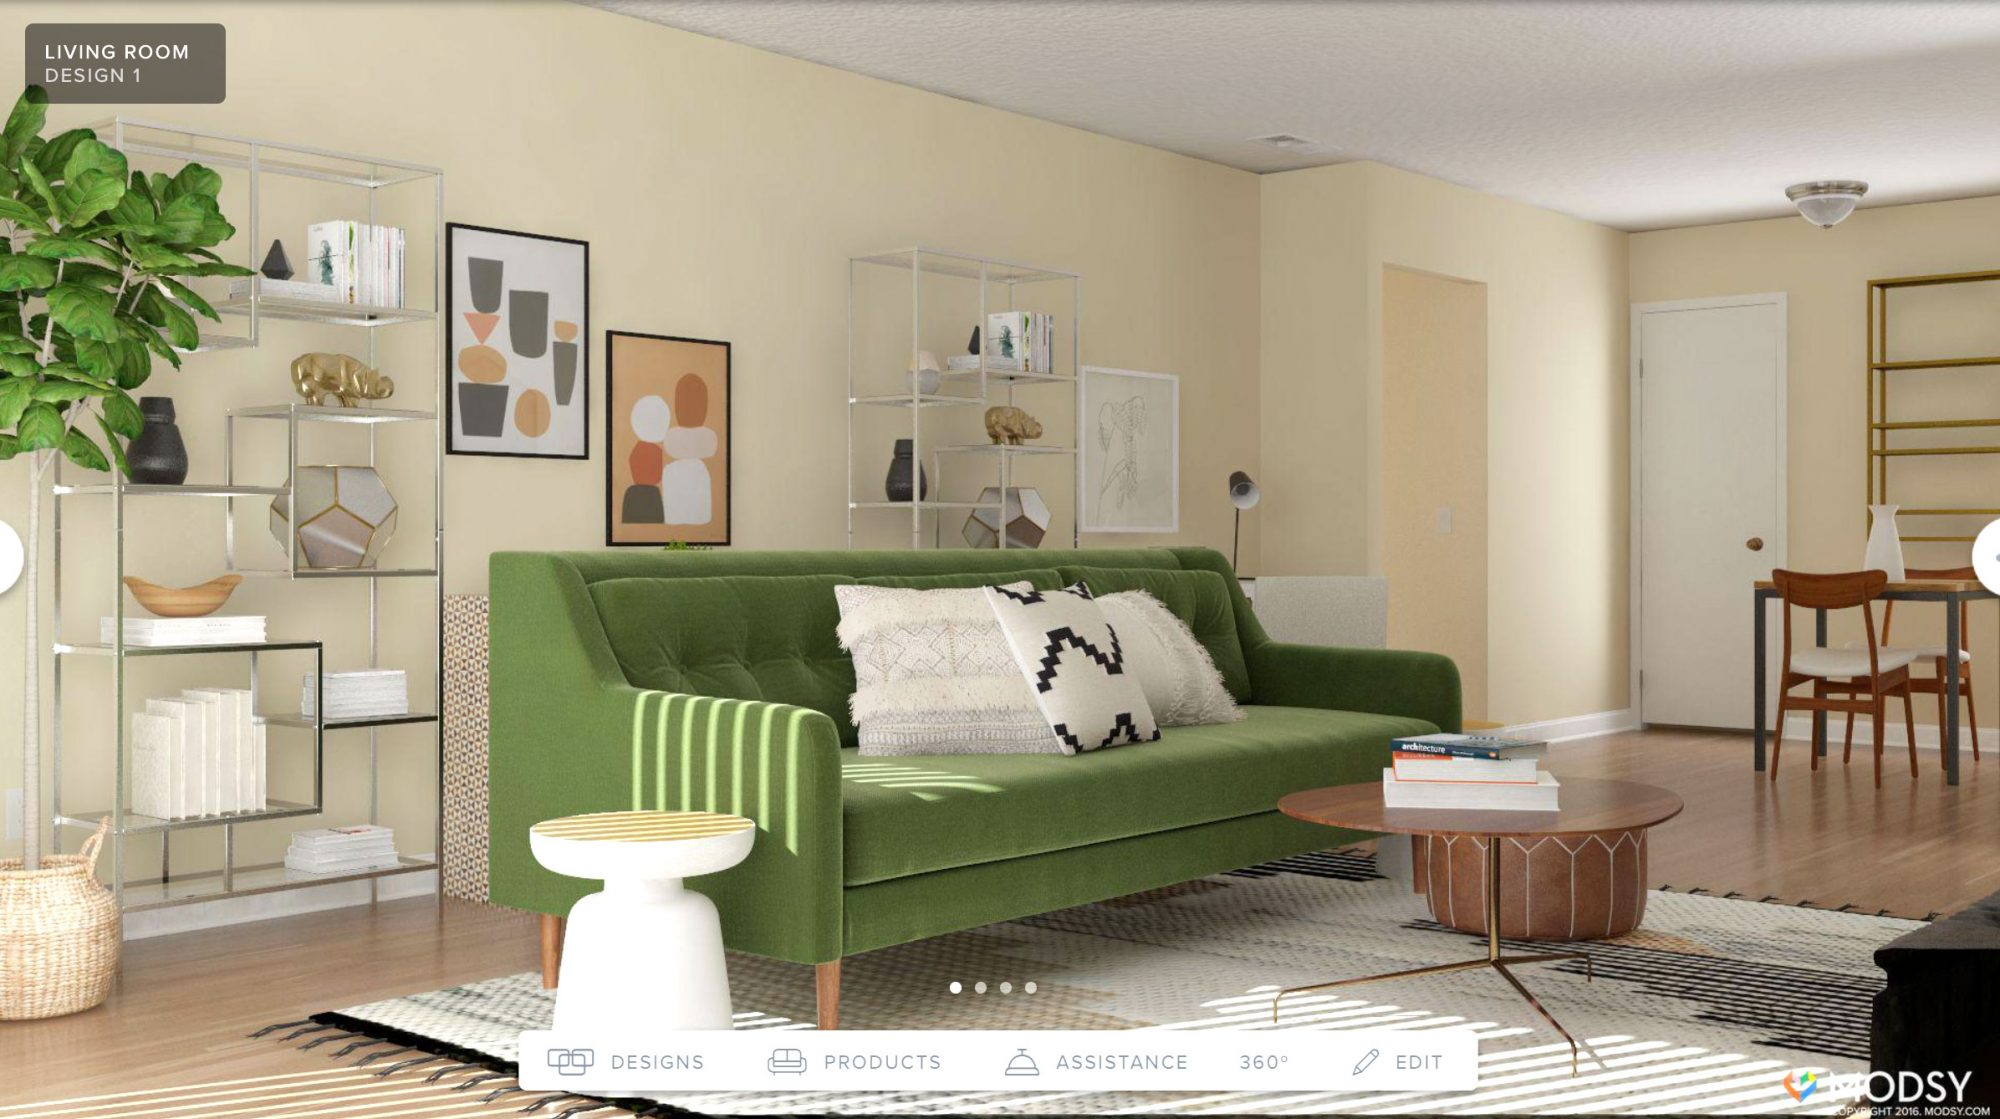 Design Your Dream Home Without Leaving the Sofa - Southern